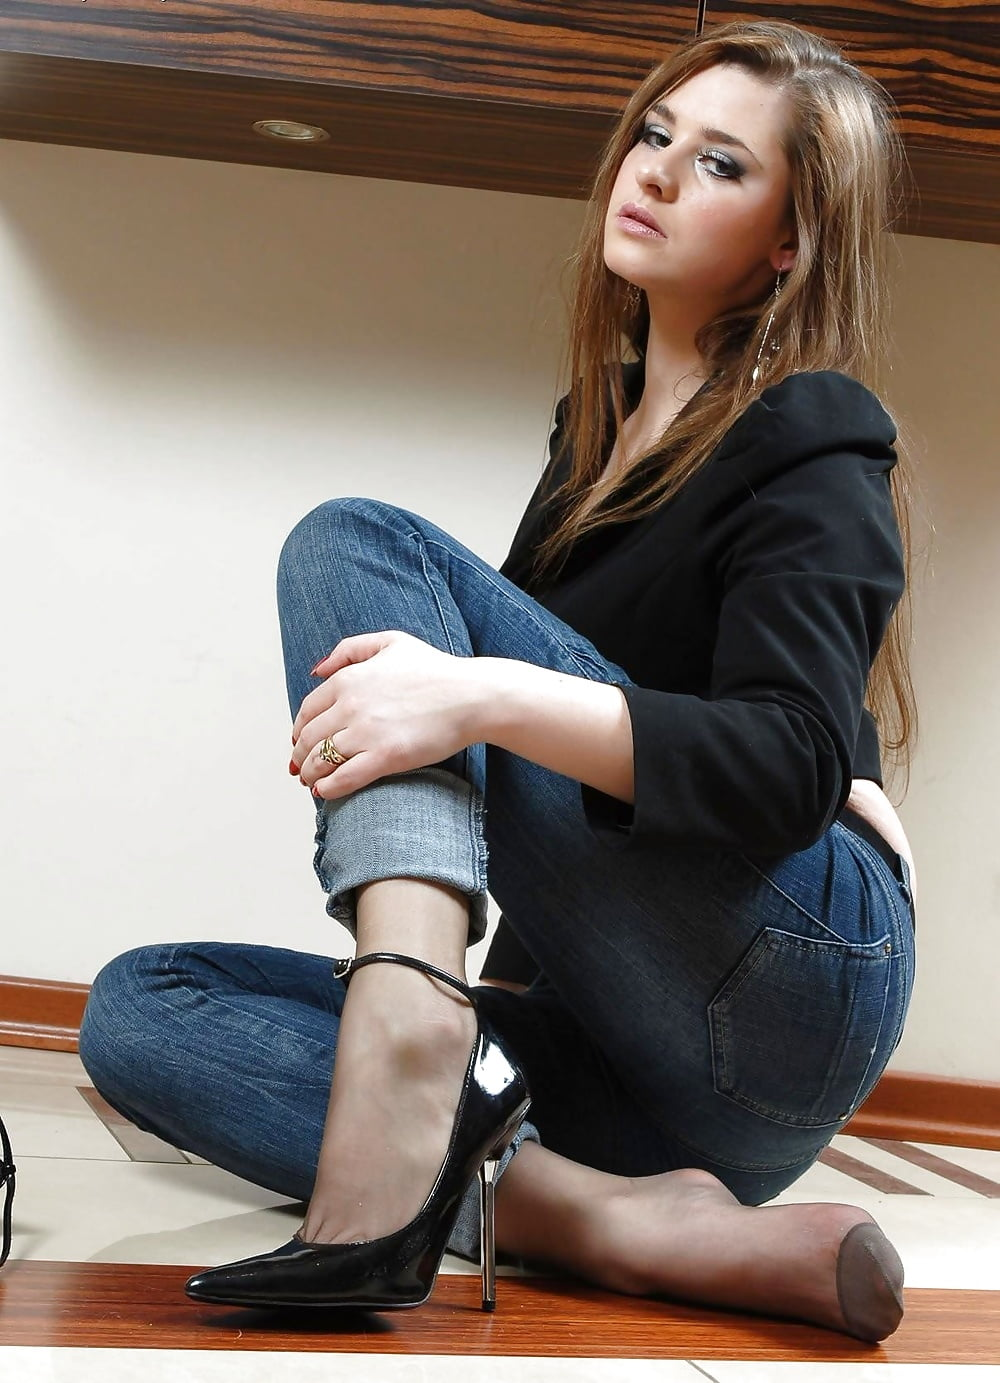 jeans-and-pantyhose-woman